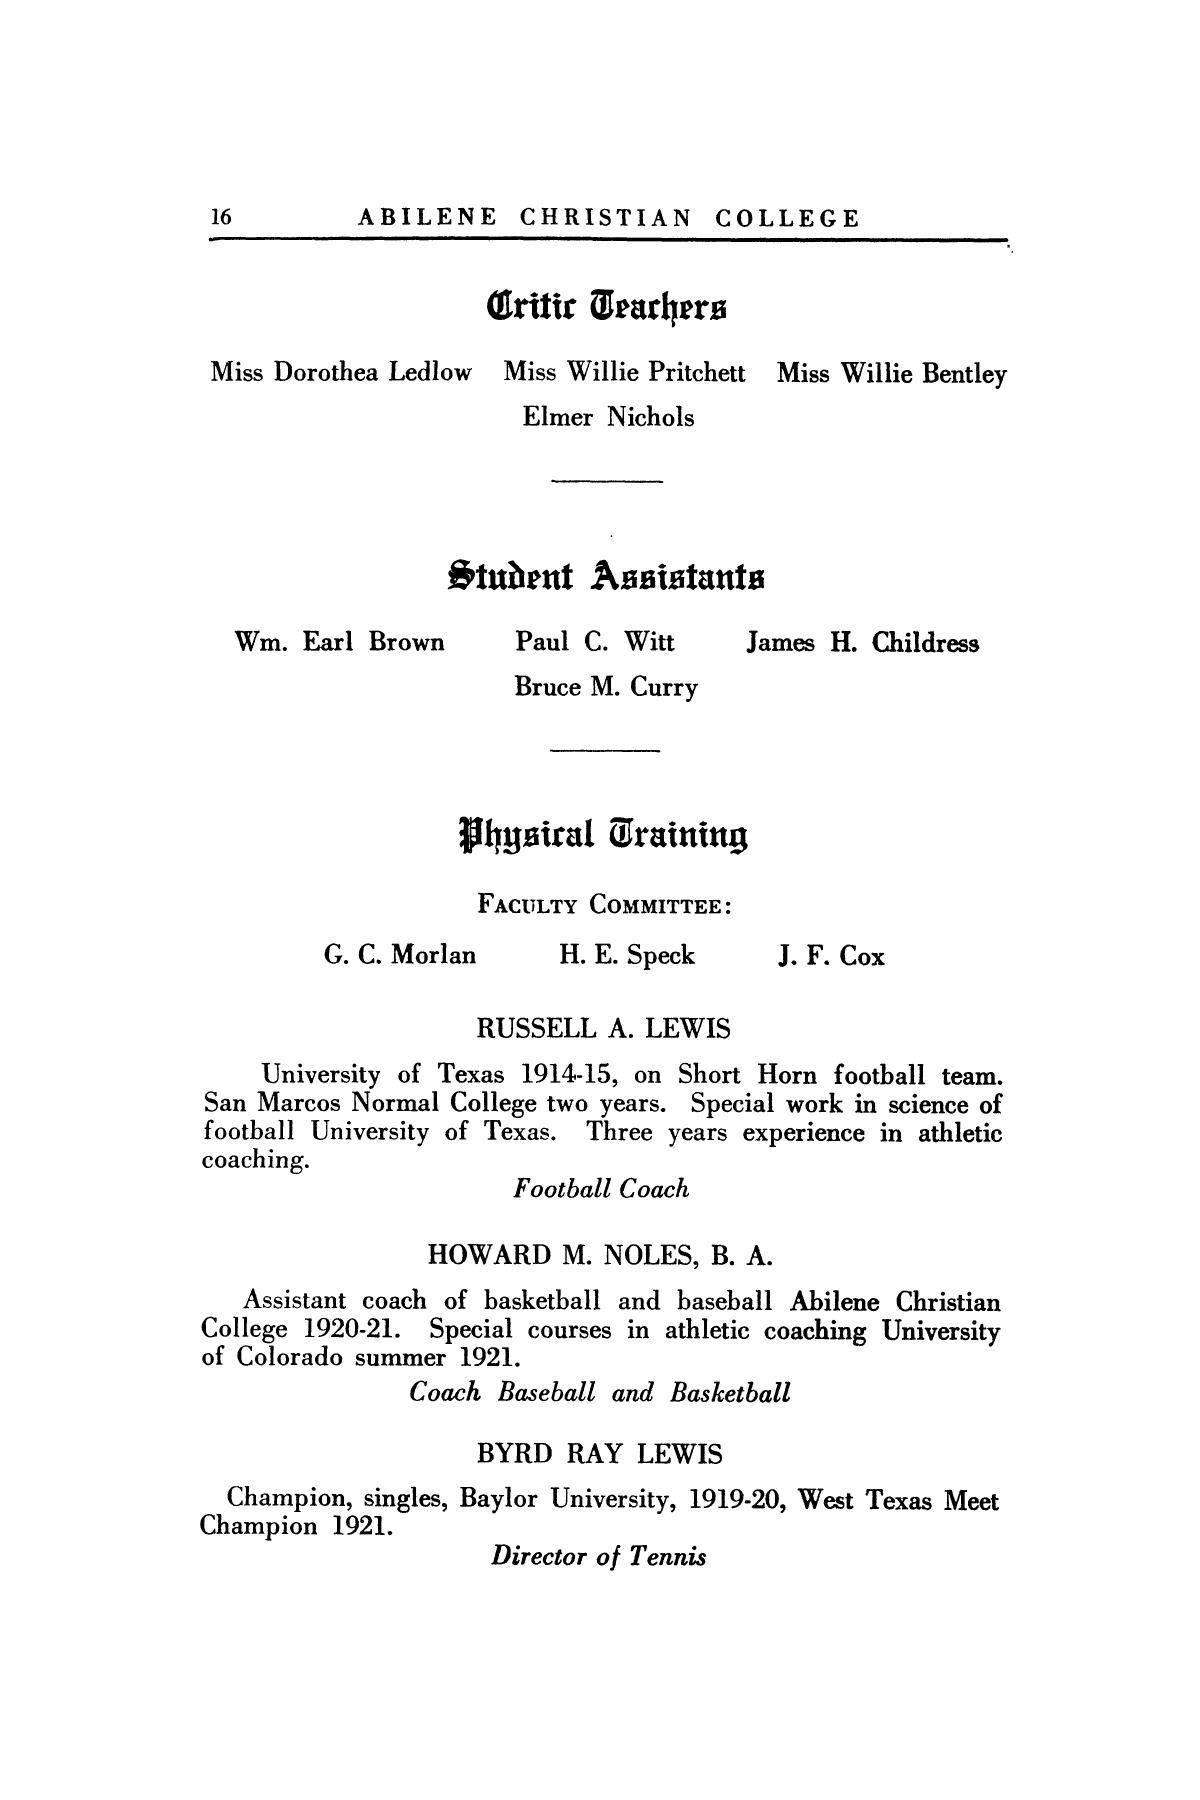 Catalog of Abilene Christian College, 1921-1922                                                                                                      16